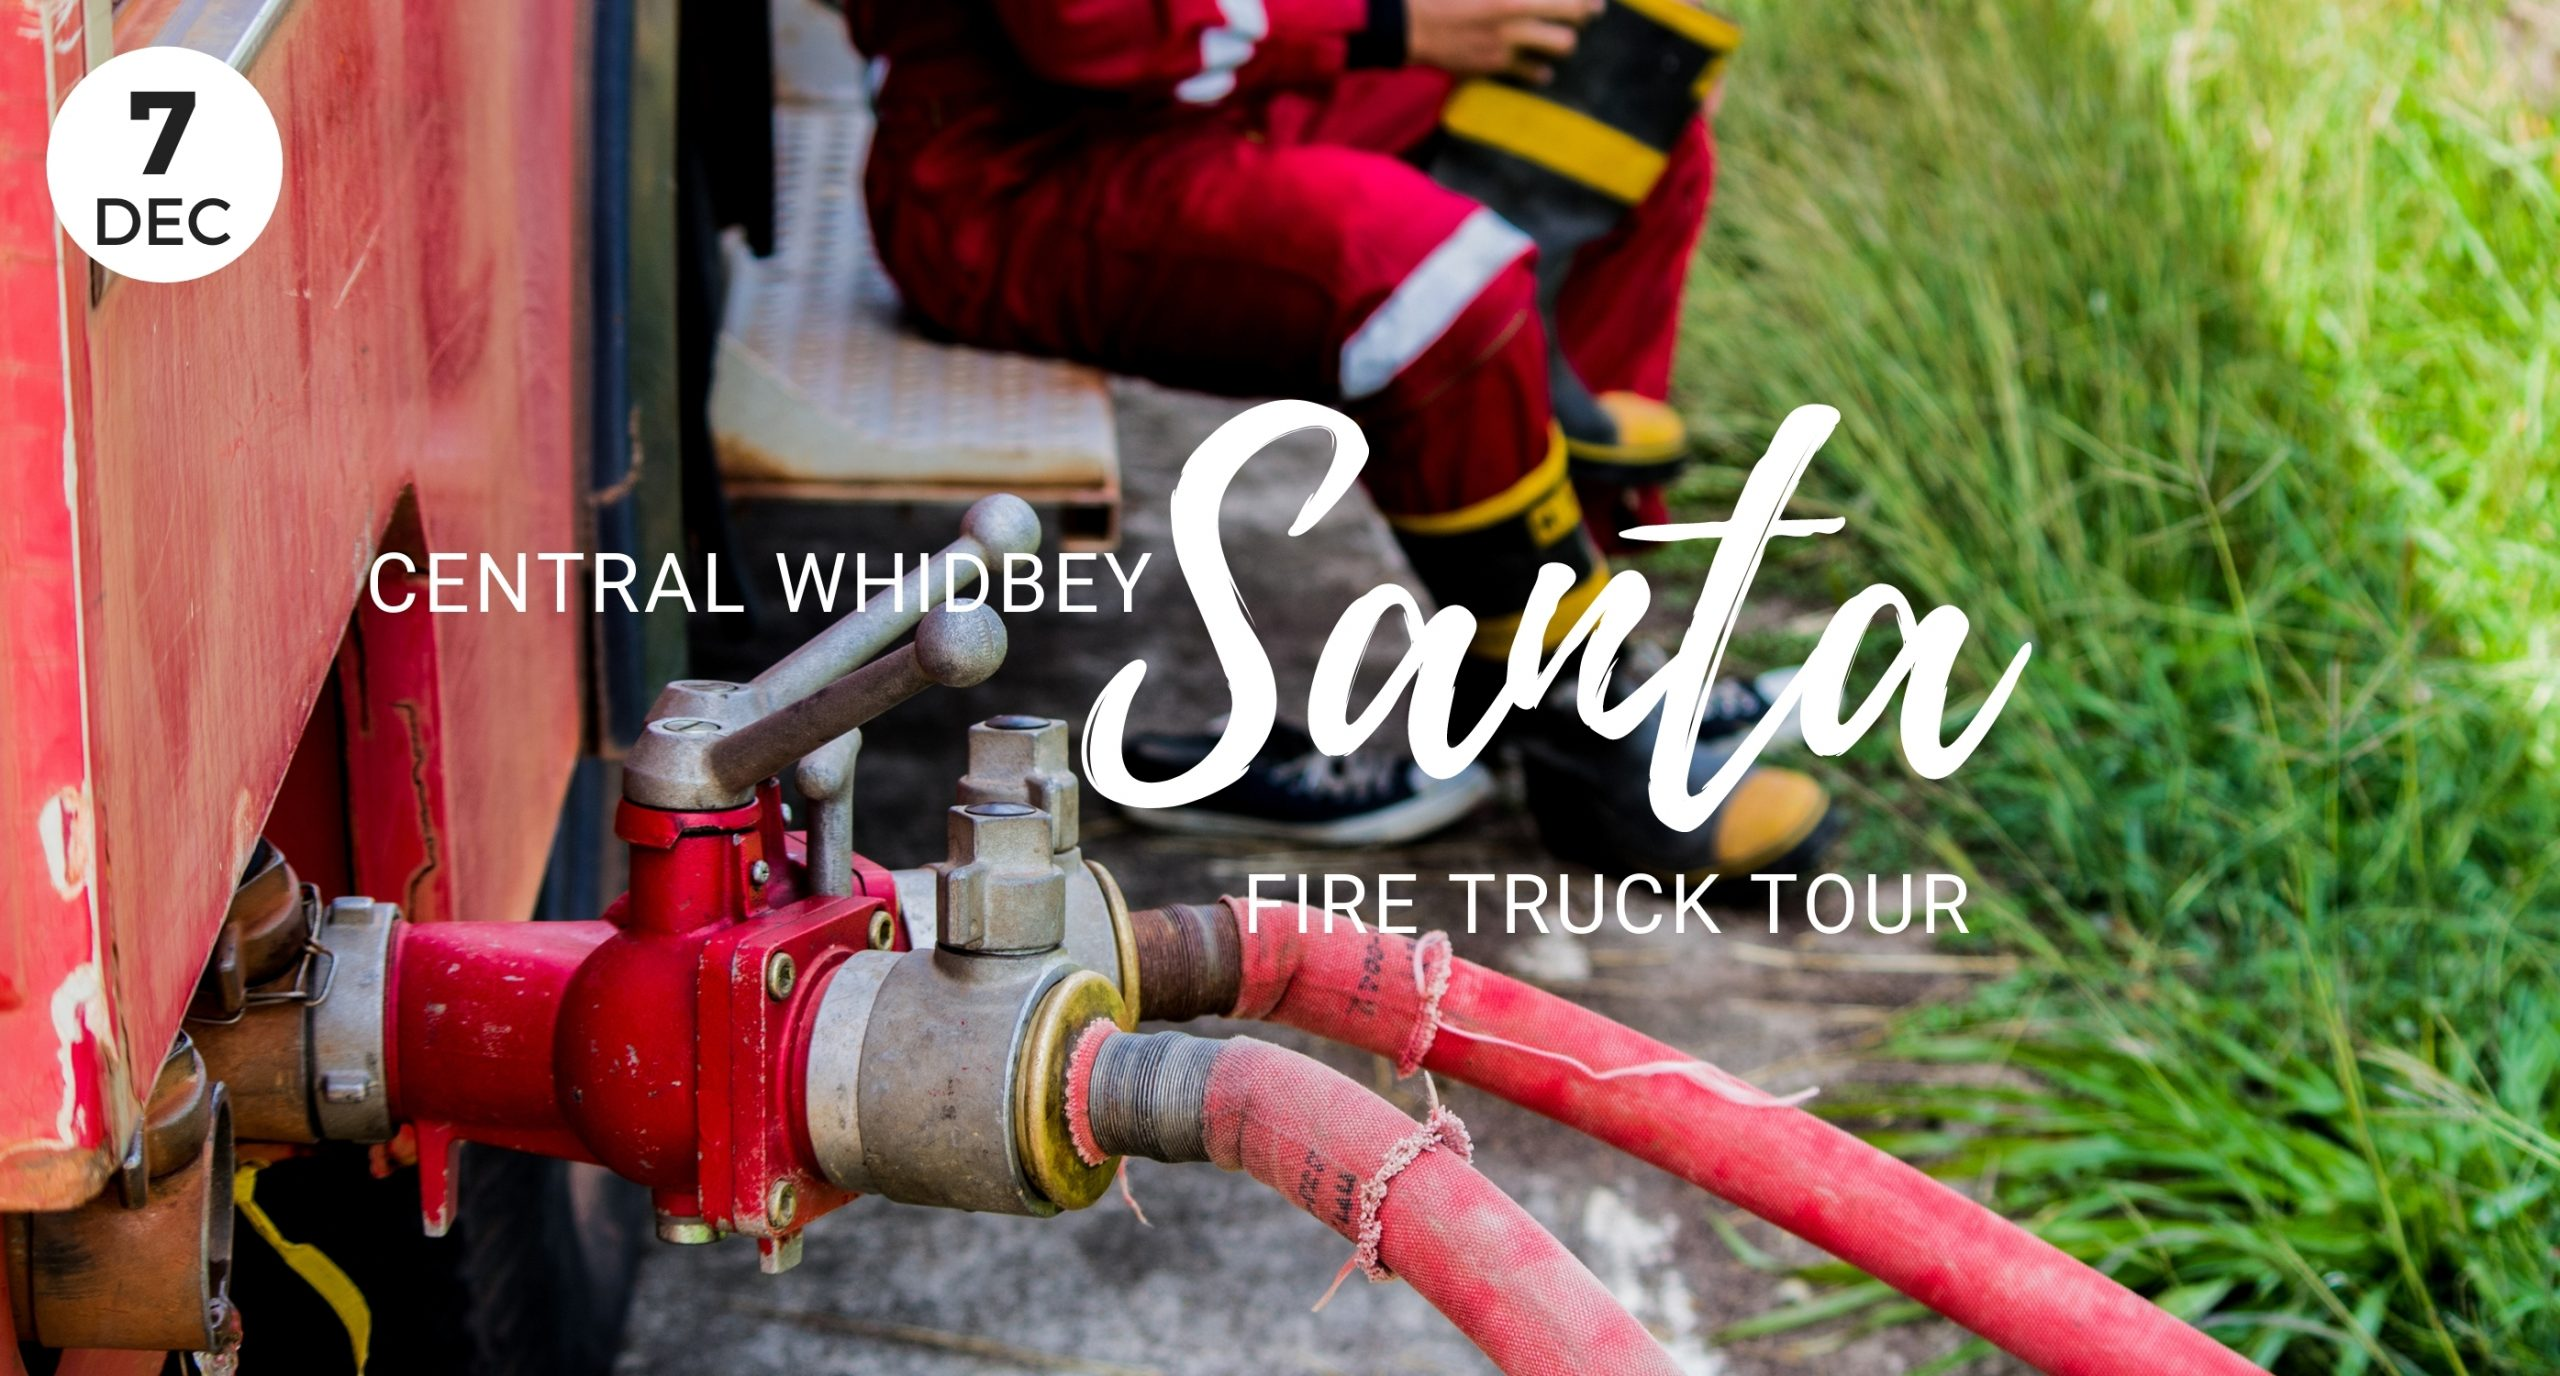 Central Whidbey Santa Fire Truck